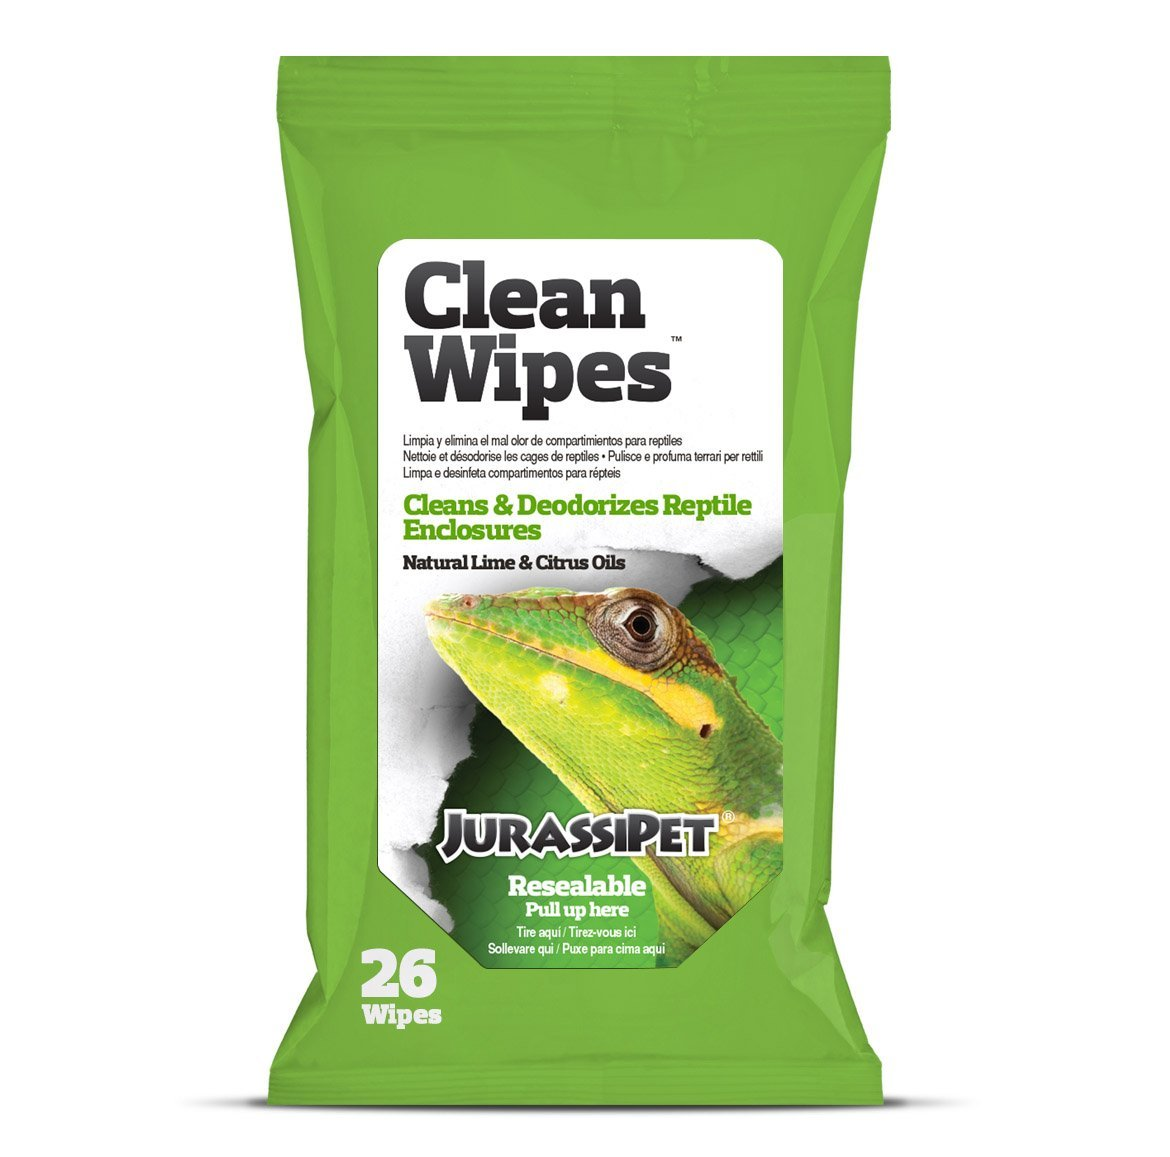 Jurassipet Clean Wipes, 26 count 8551